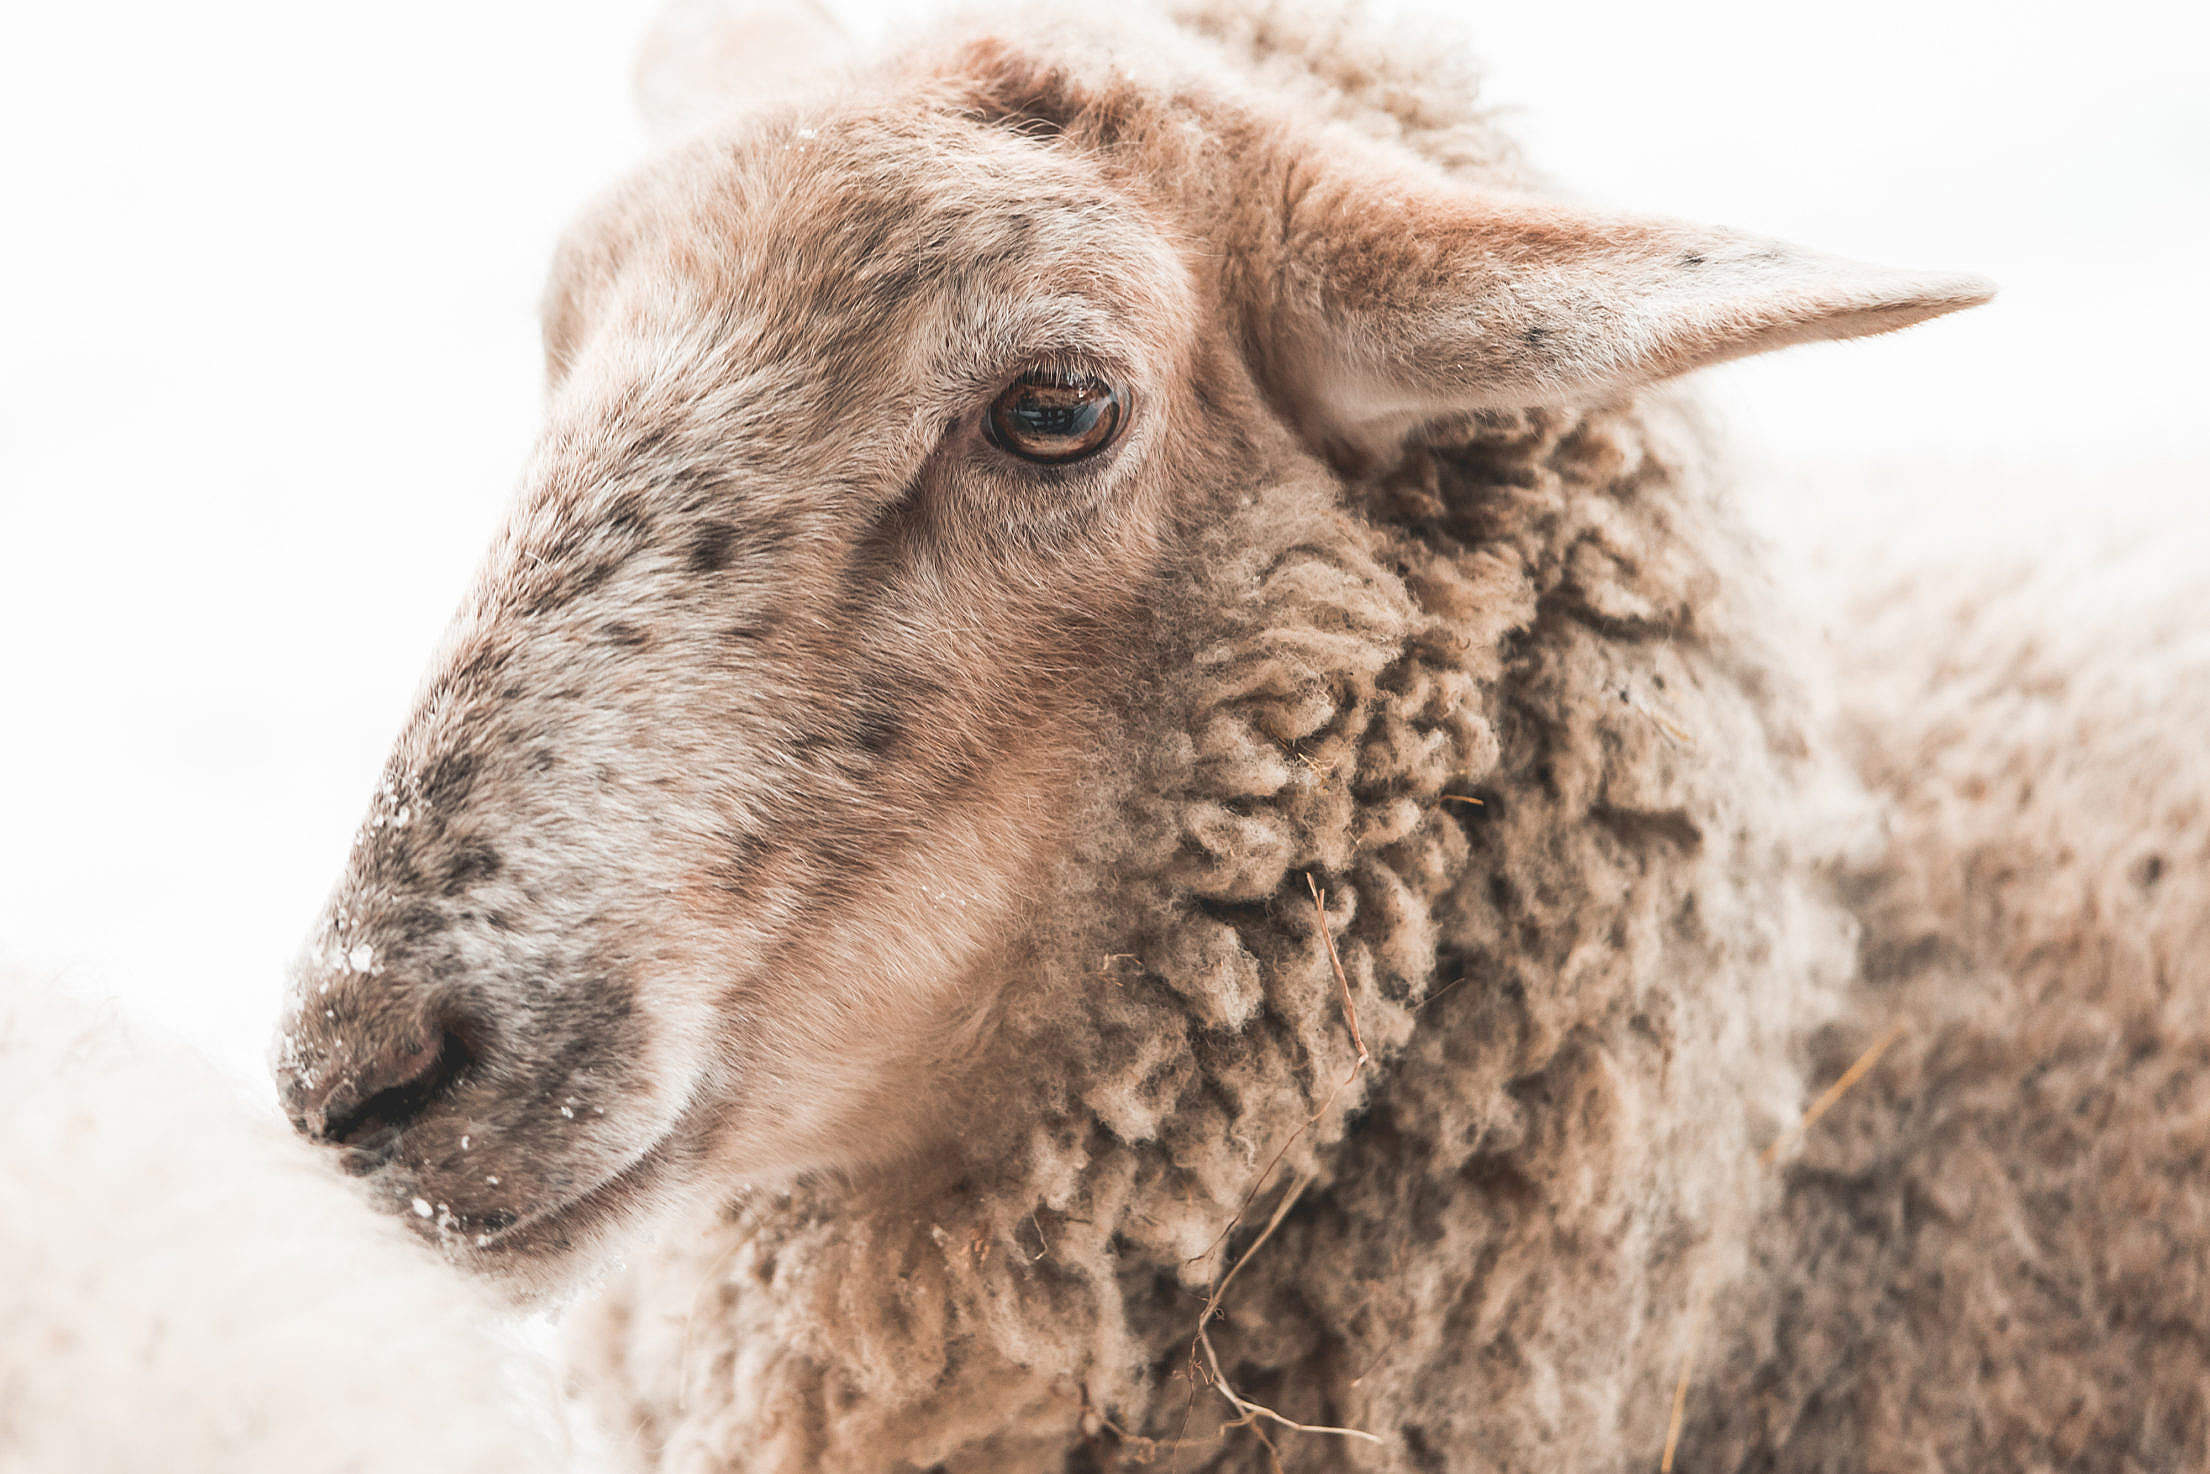 Portrait of Sheep in Winter Free Stock Photo